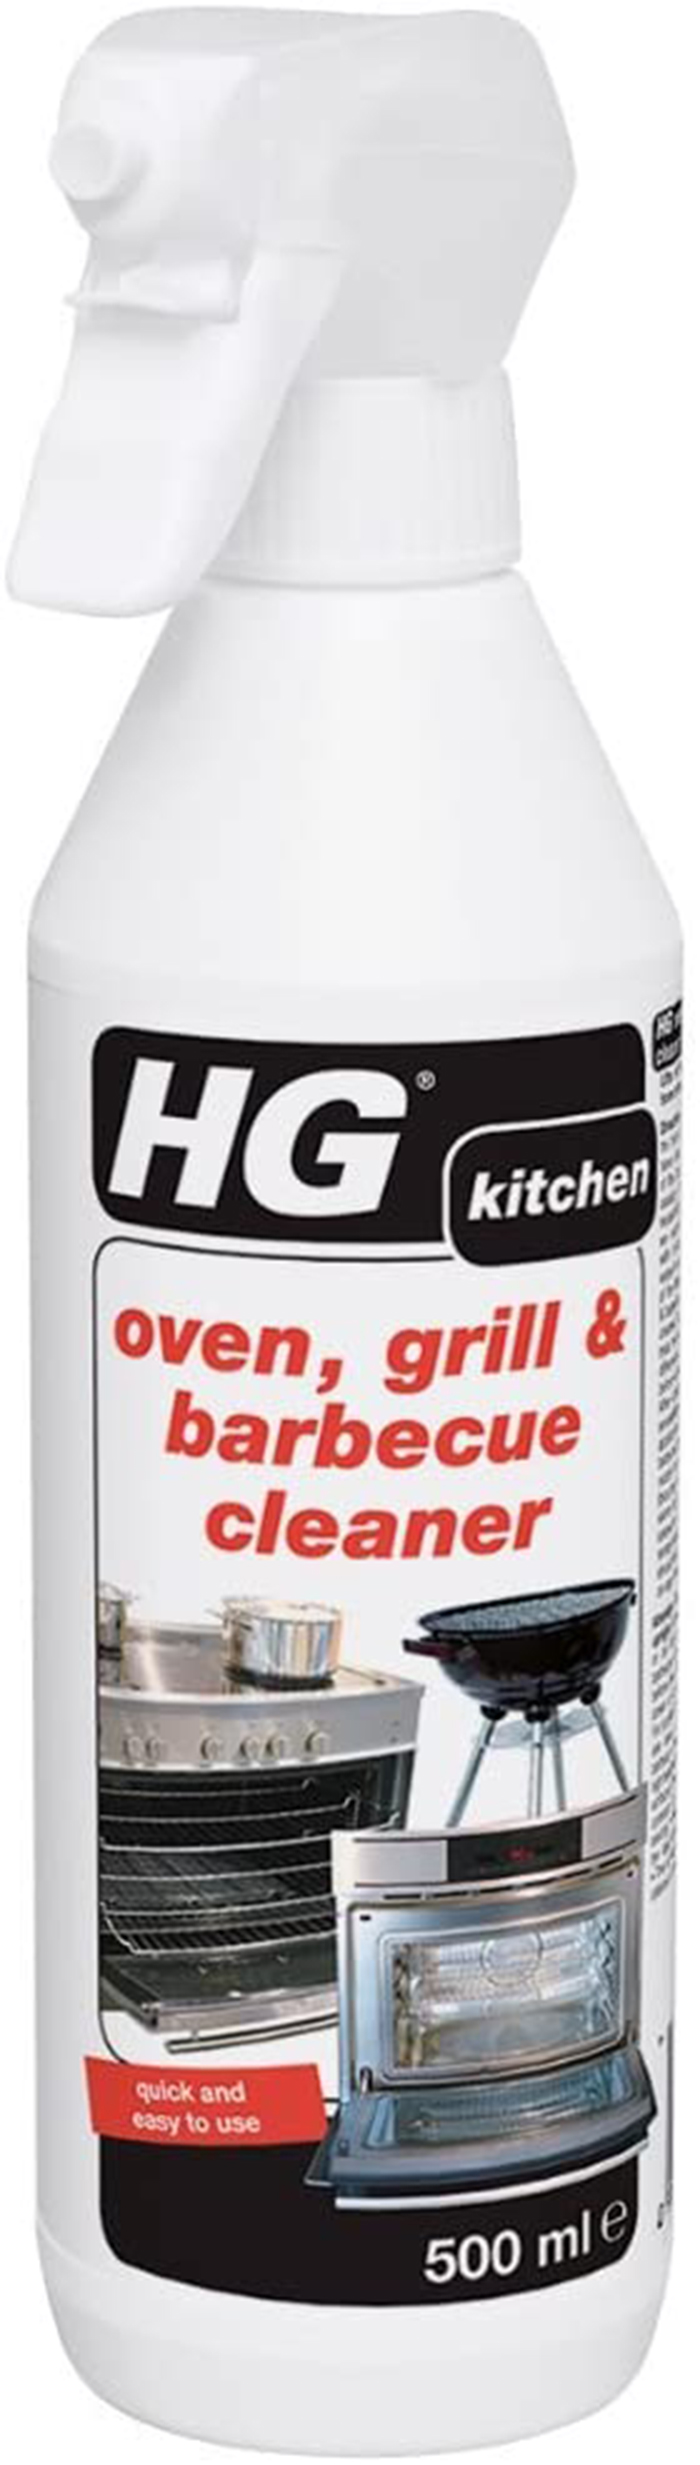 HG OVEN, GRILL & BARBEQUE CLEANER 500ML